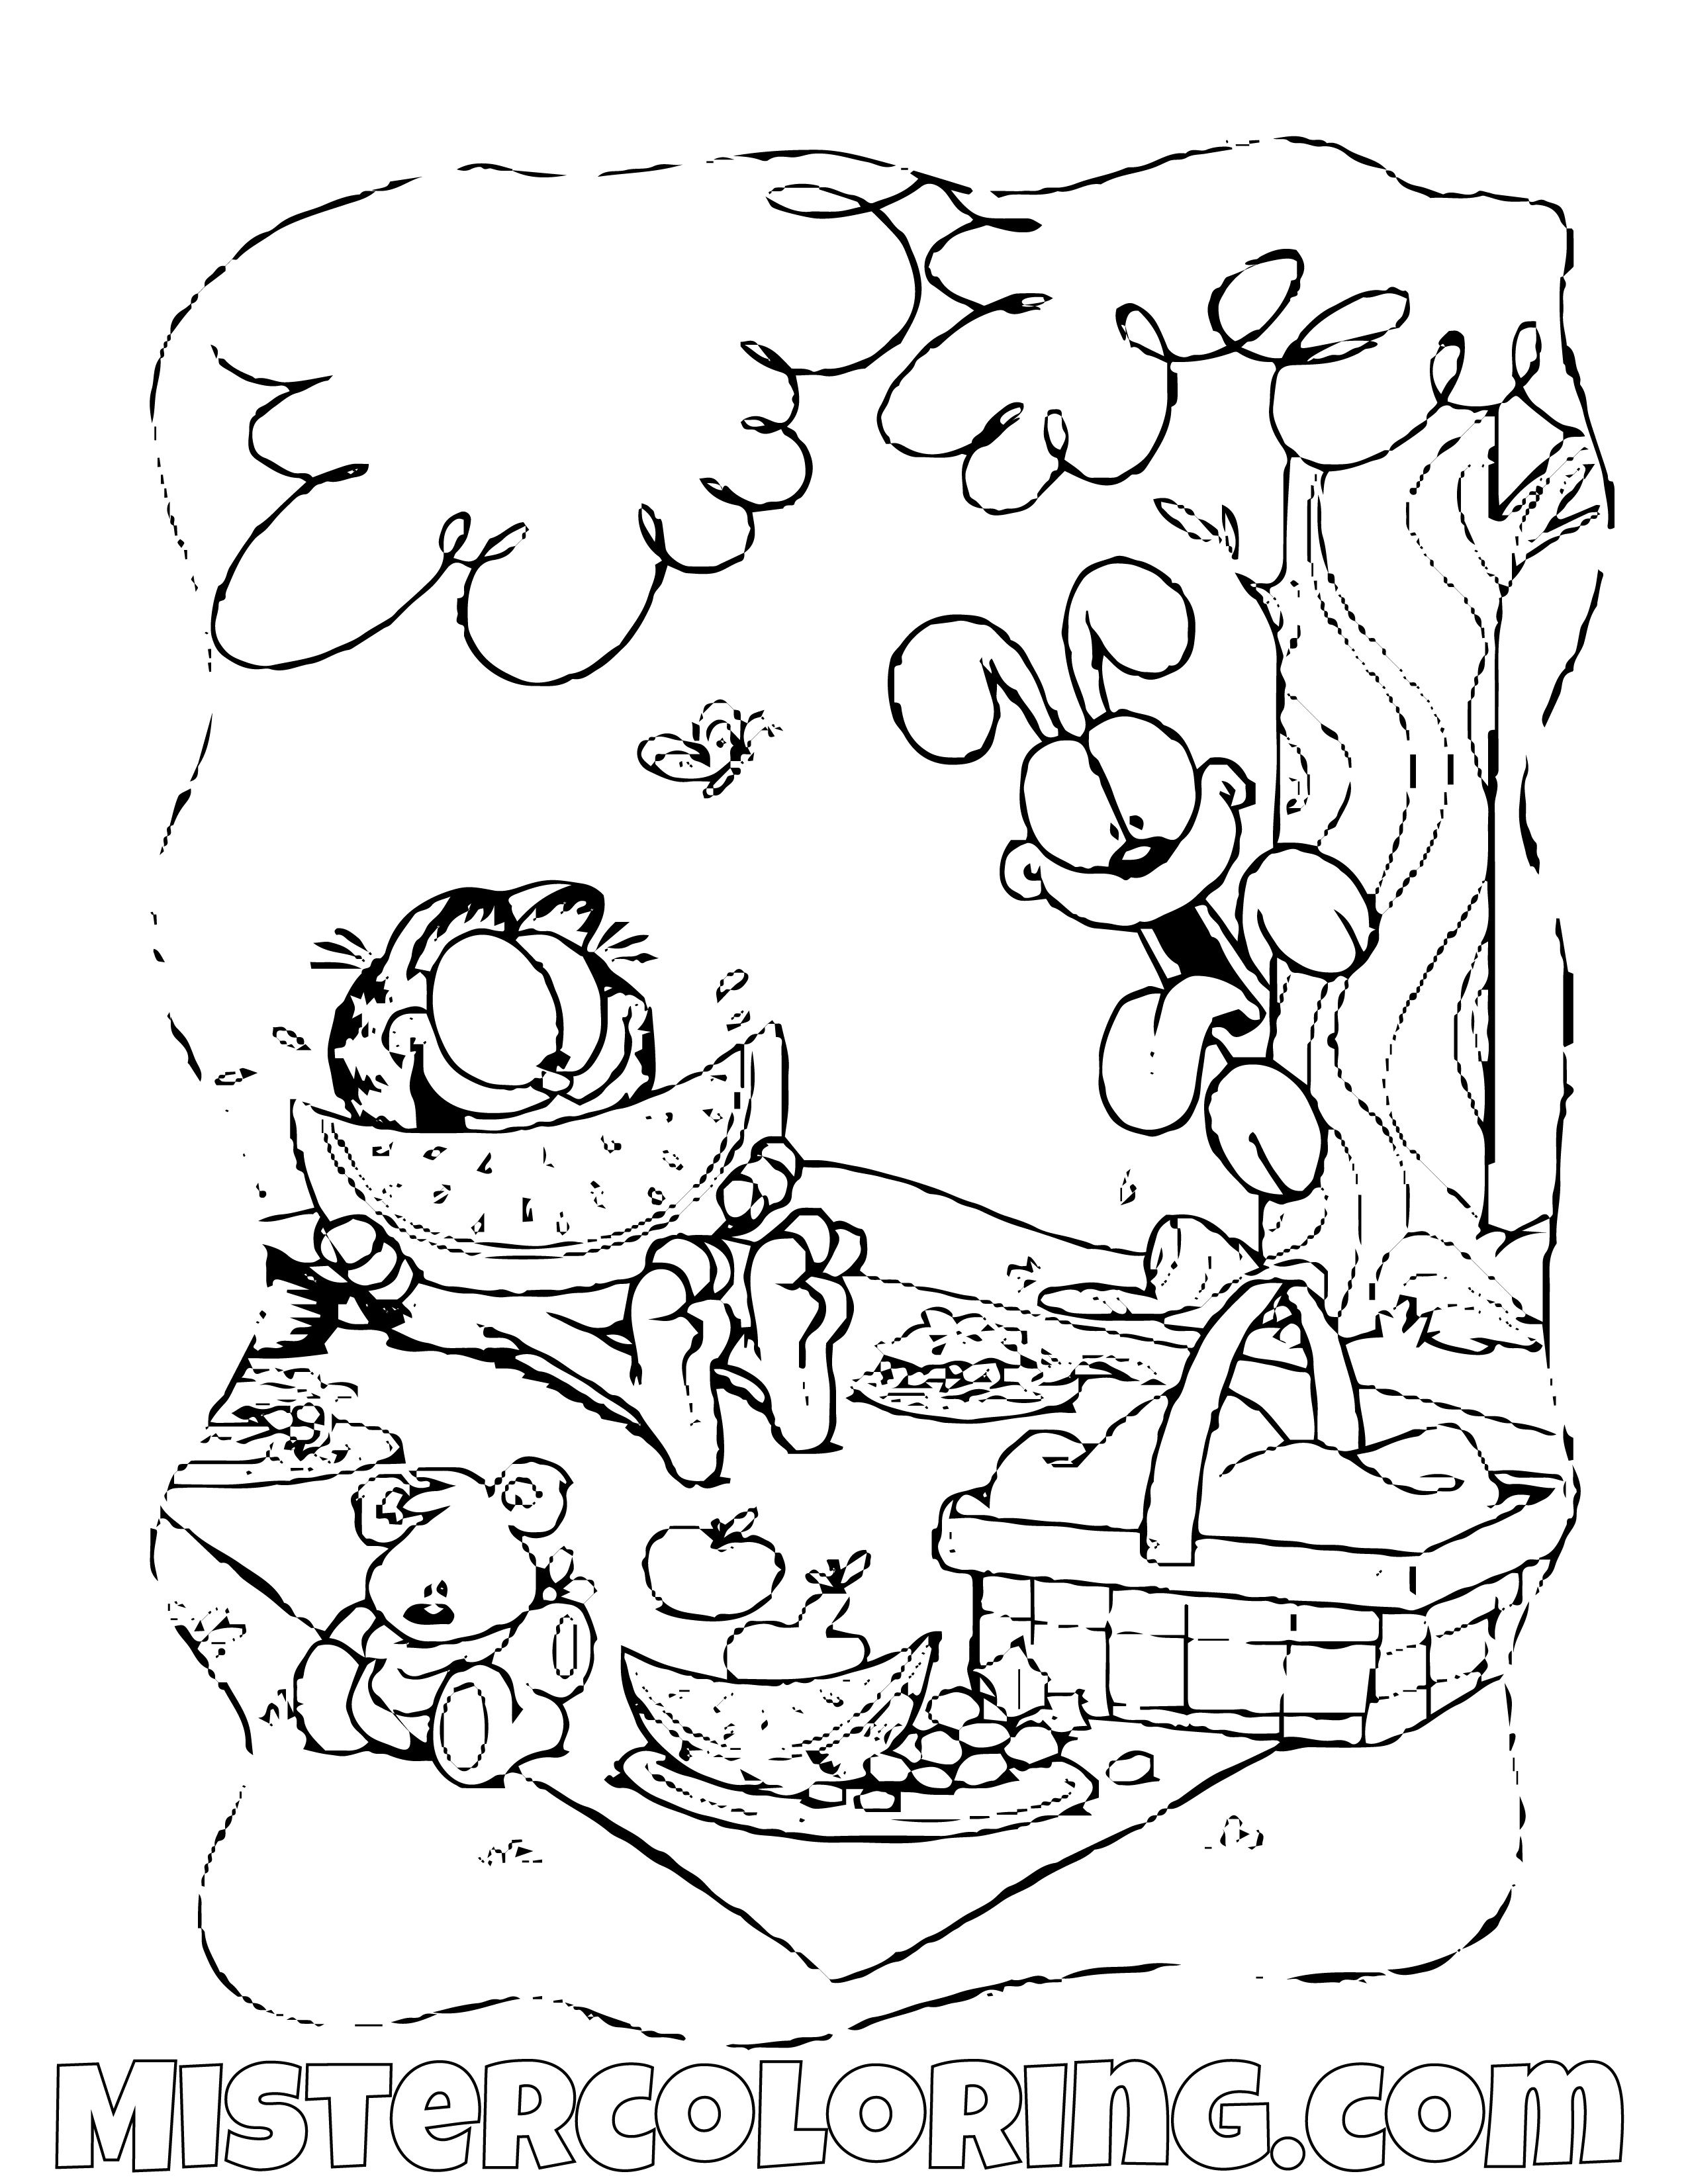 Pin By Jose Quot Cijo Quot Vazquez On Garfield Coloring Pages For